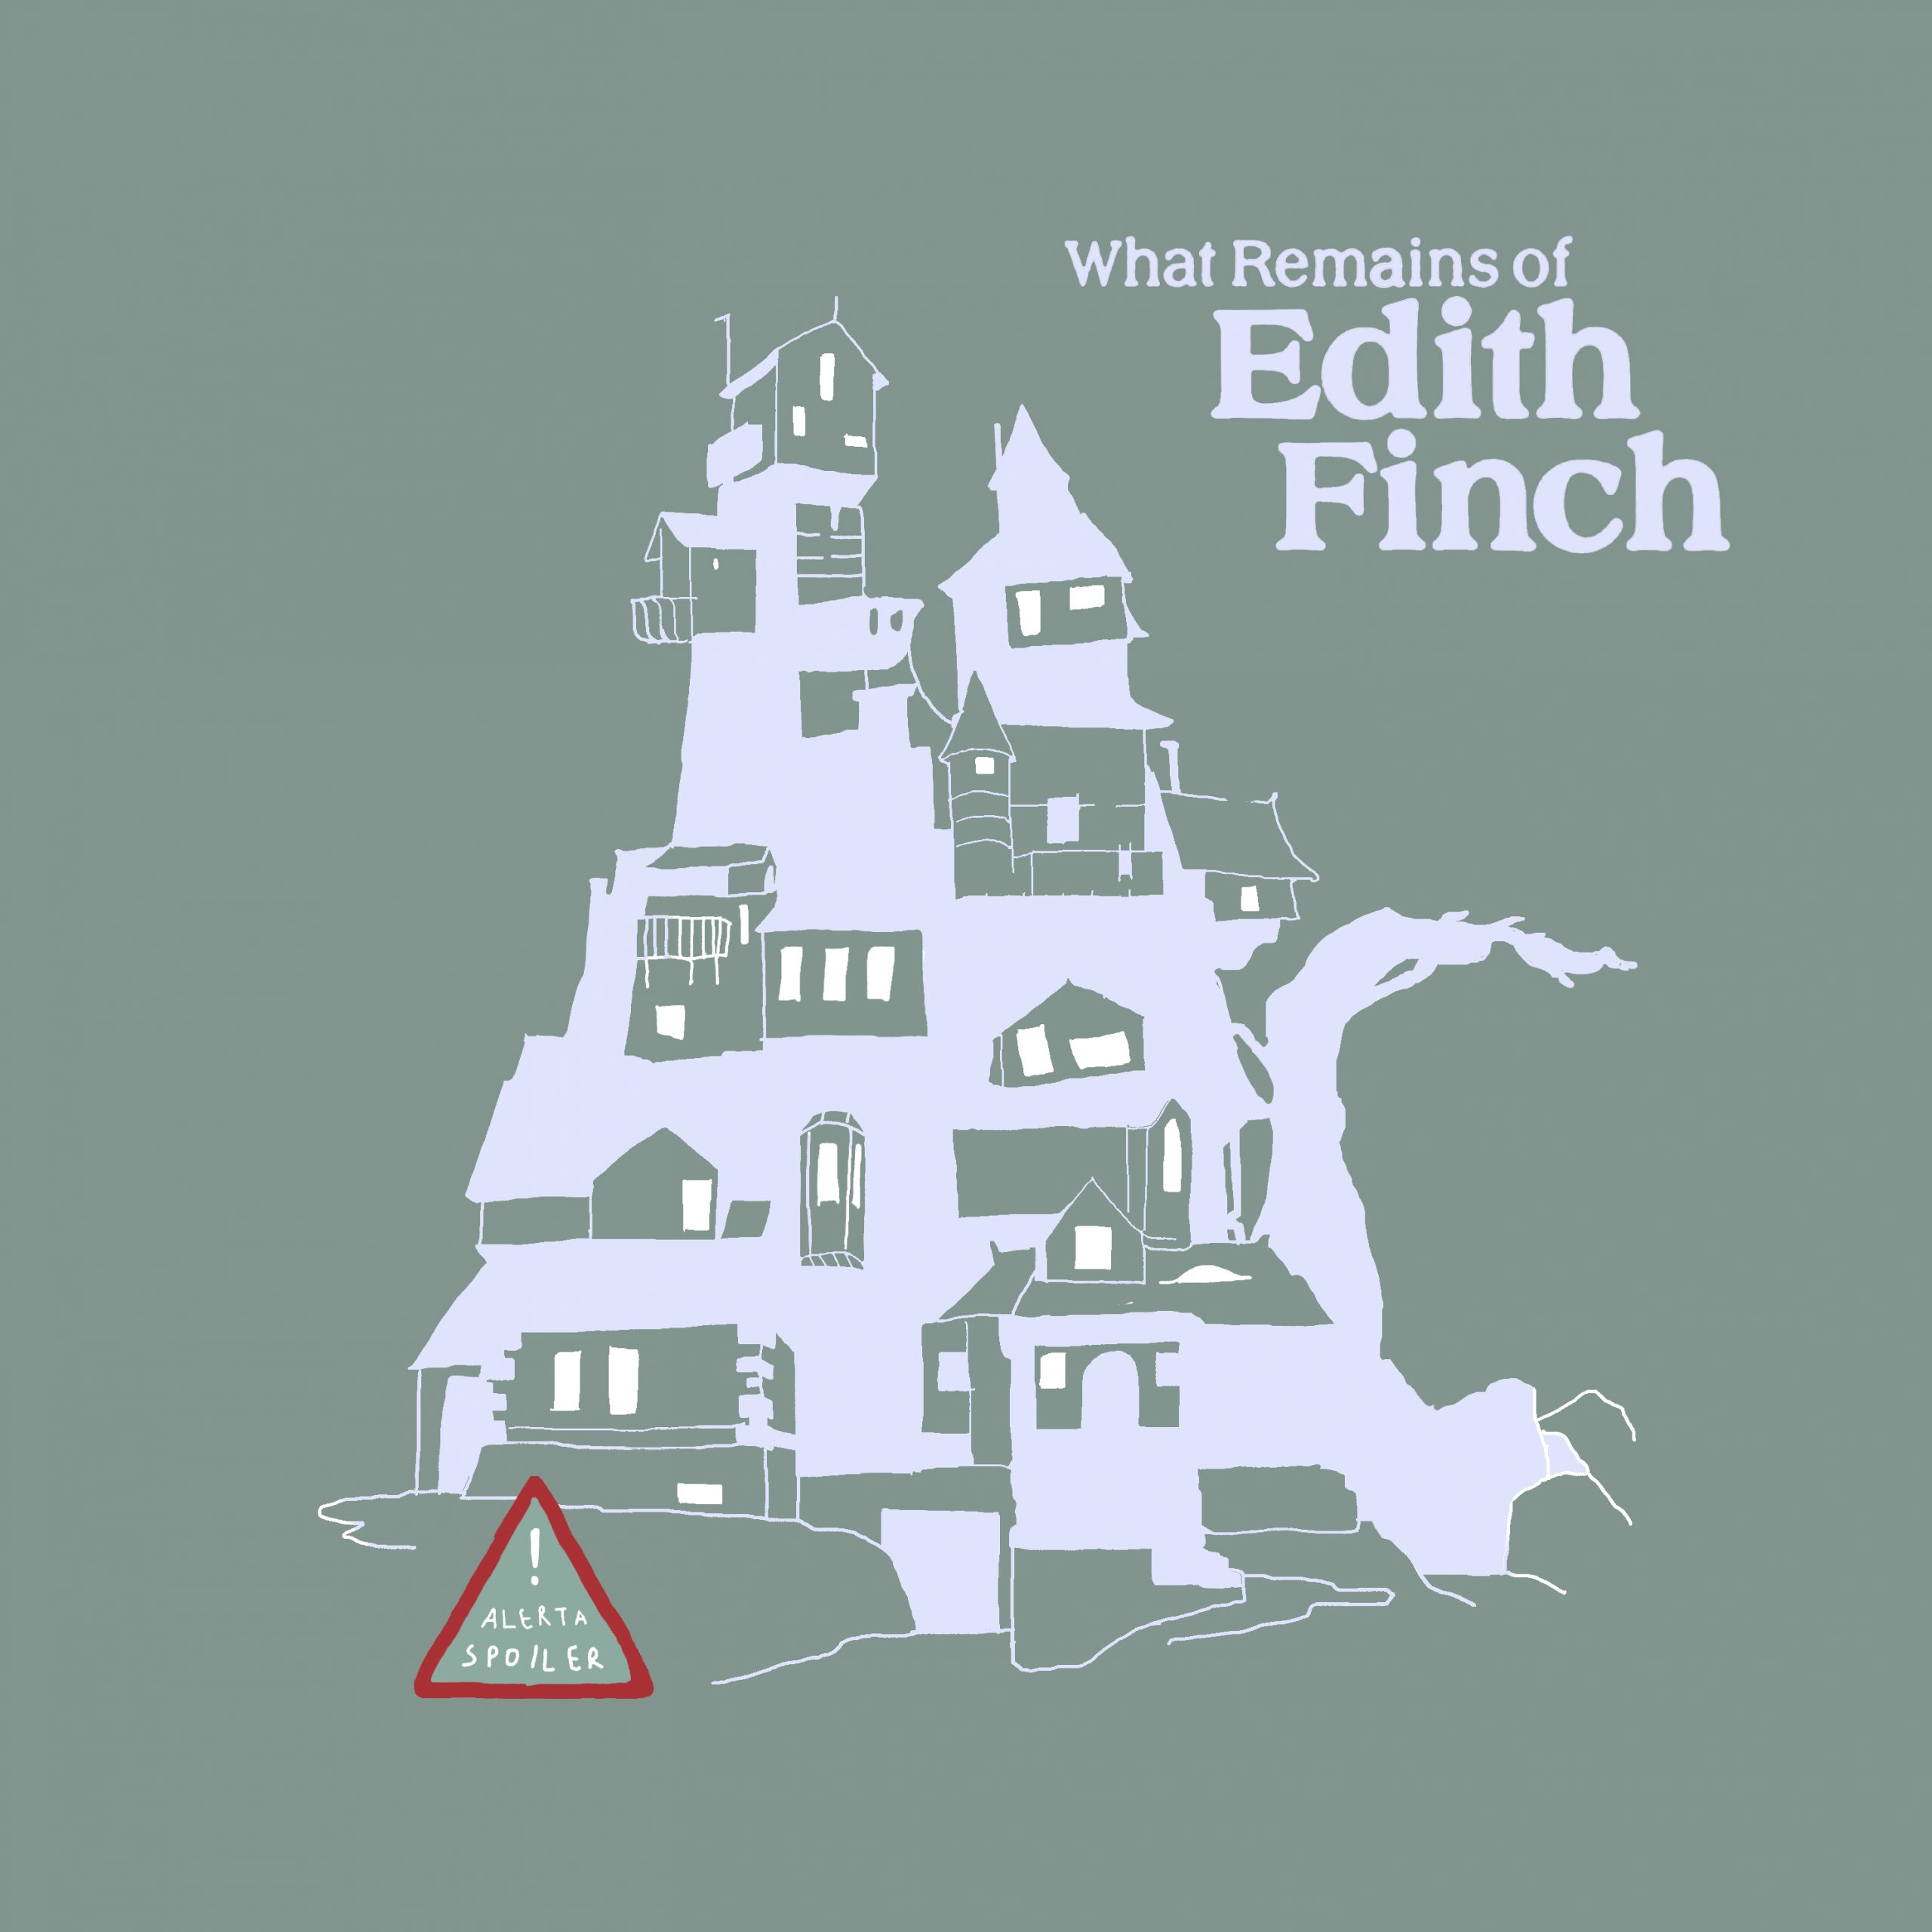 alerta spoiler what remains of edith finch